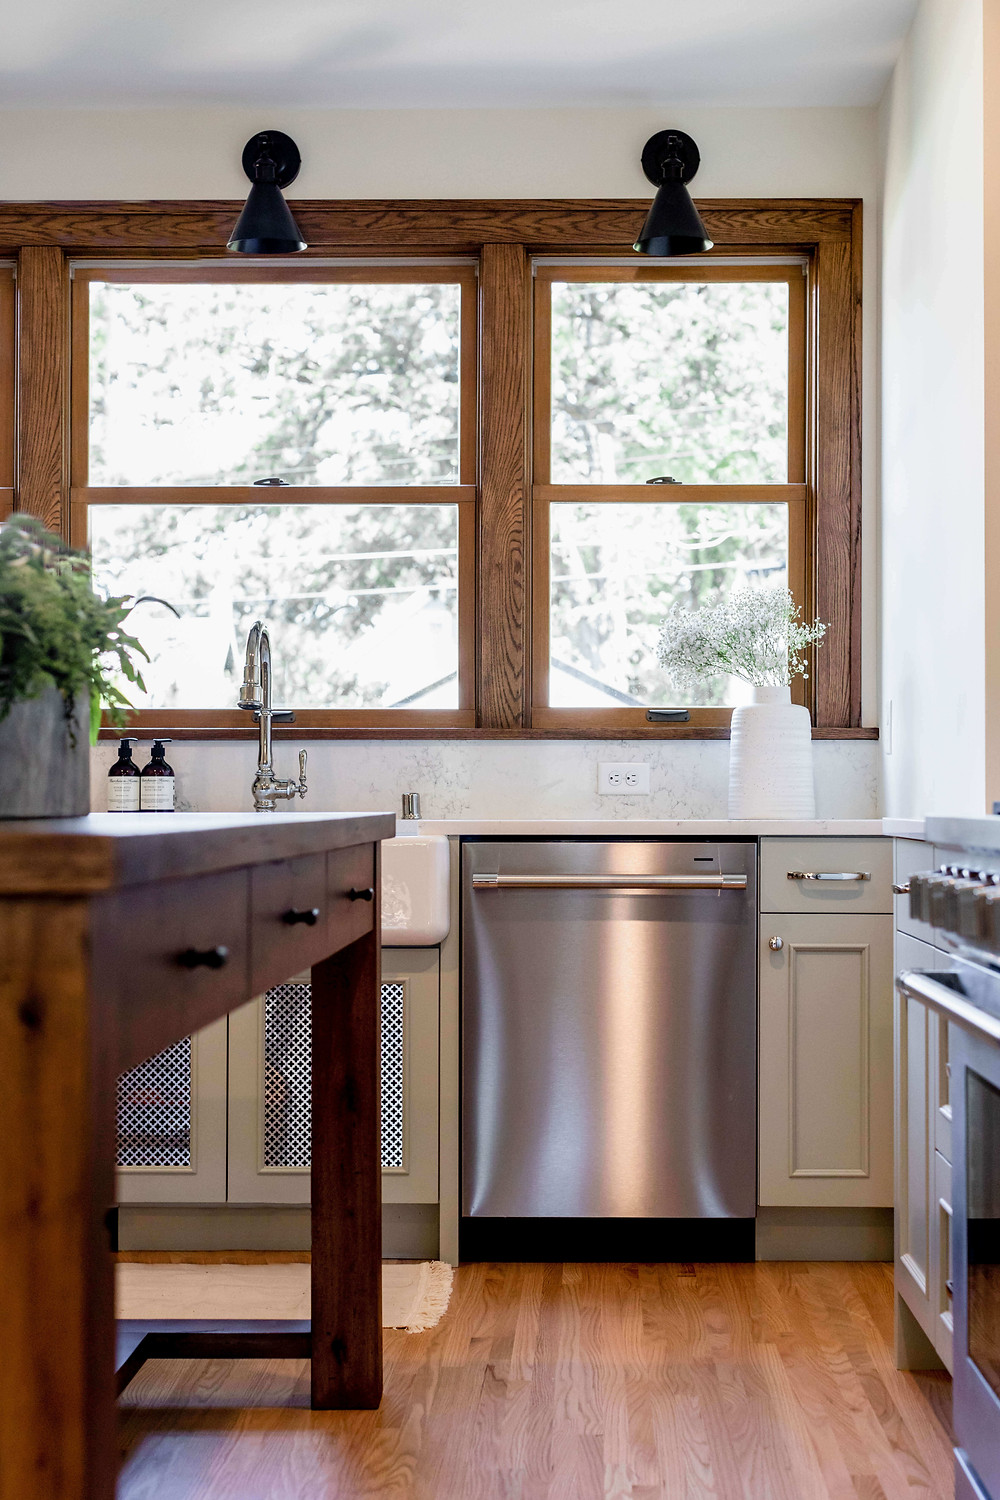 Tudor style kitchen renovation with custom craftsman baker's table and beautiful wood window trim